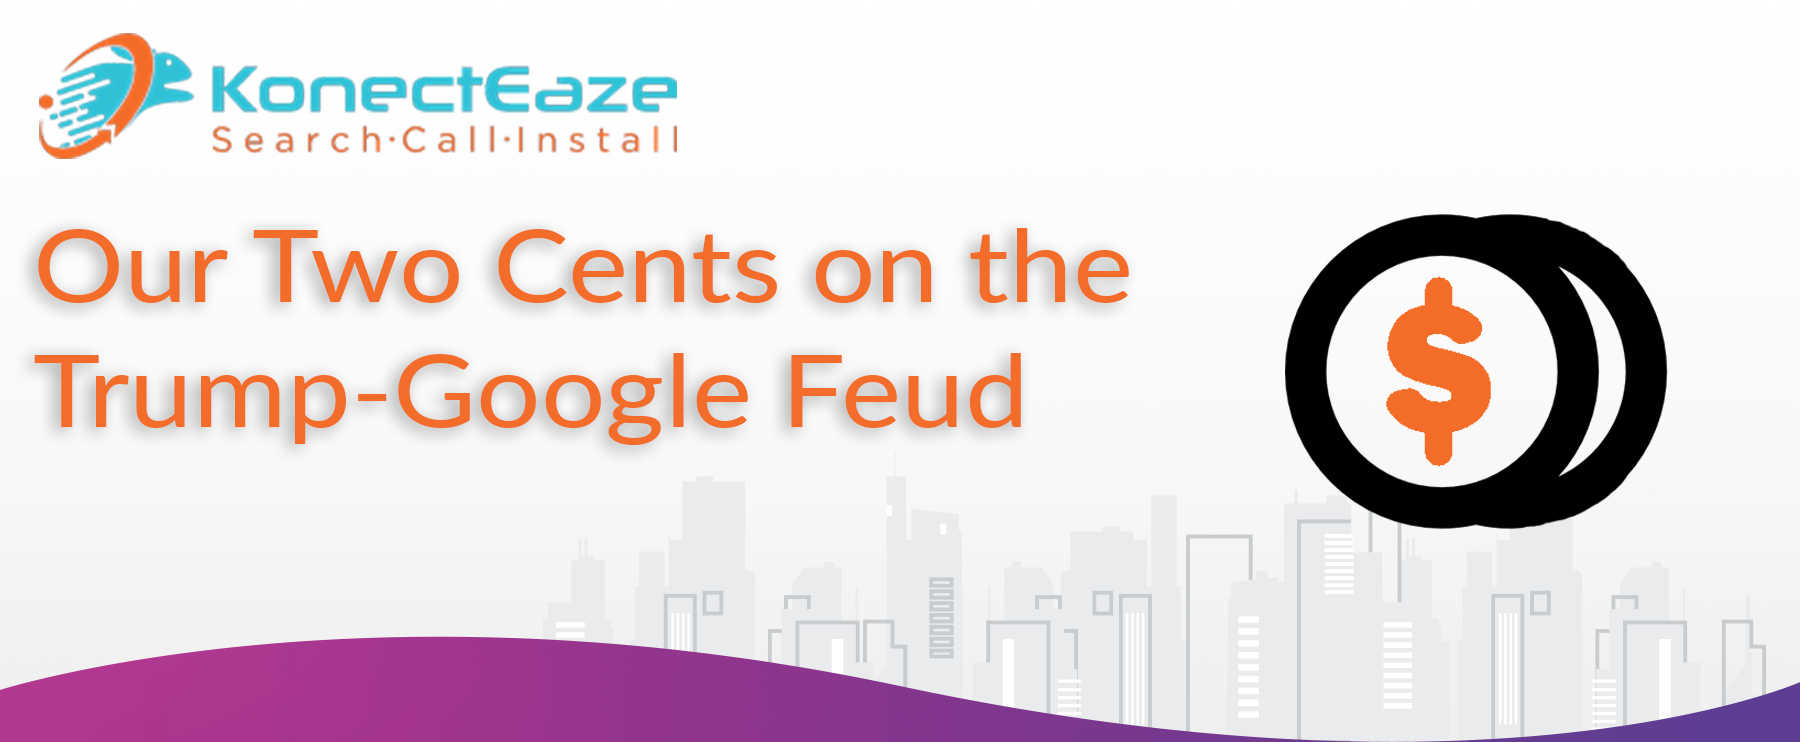 Our Two Cents on the Trump-Google Feud